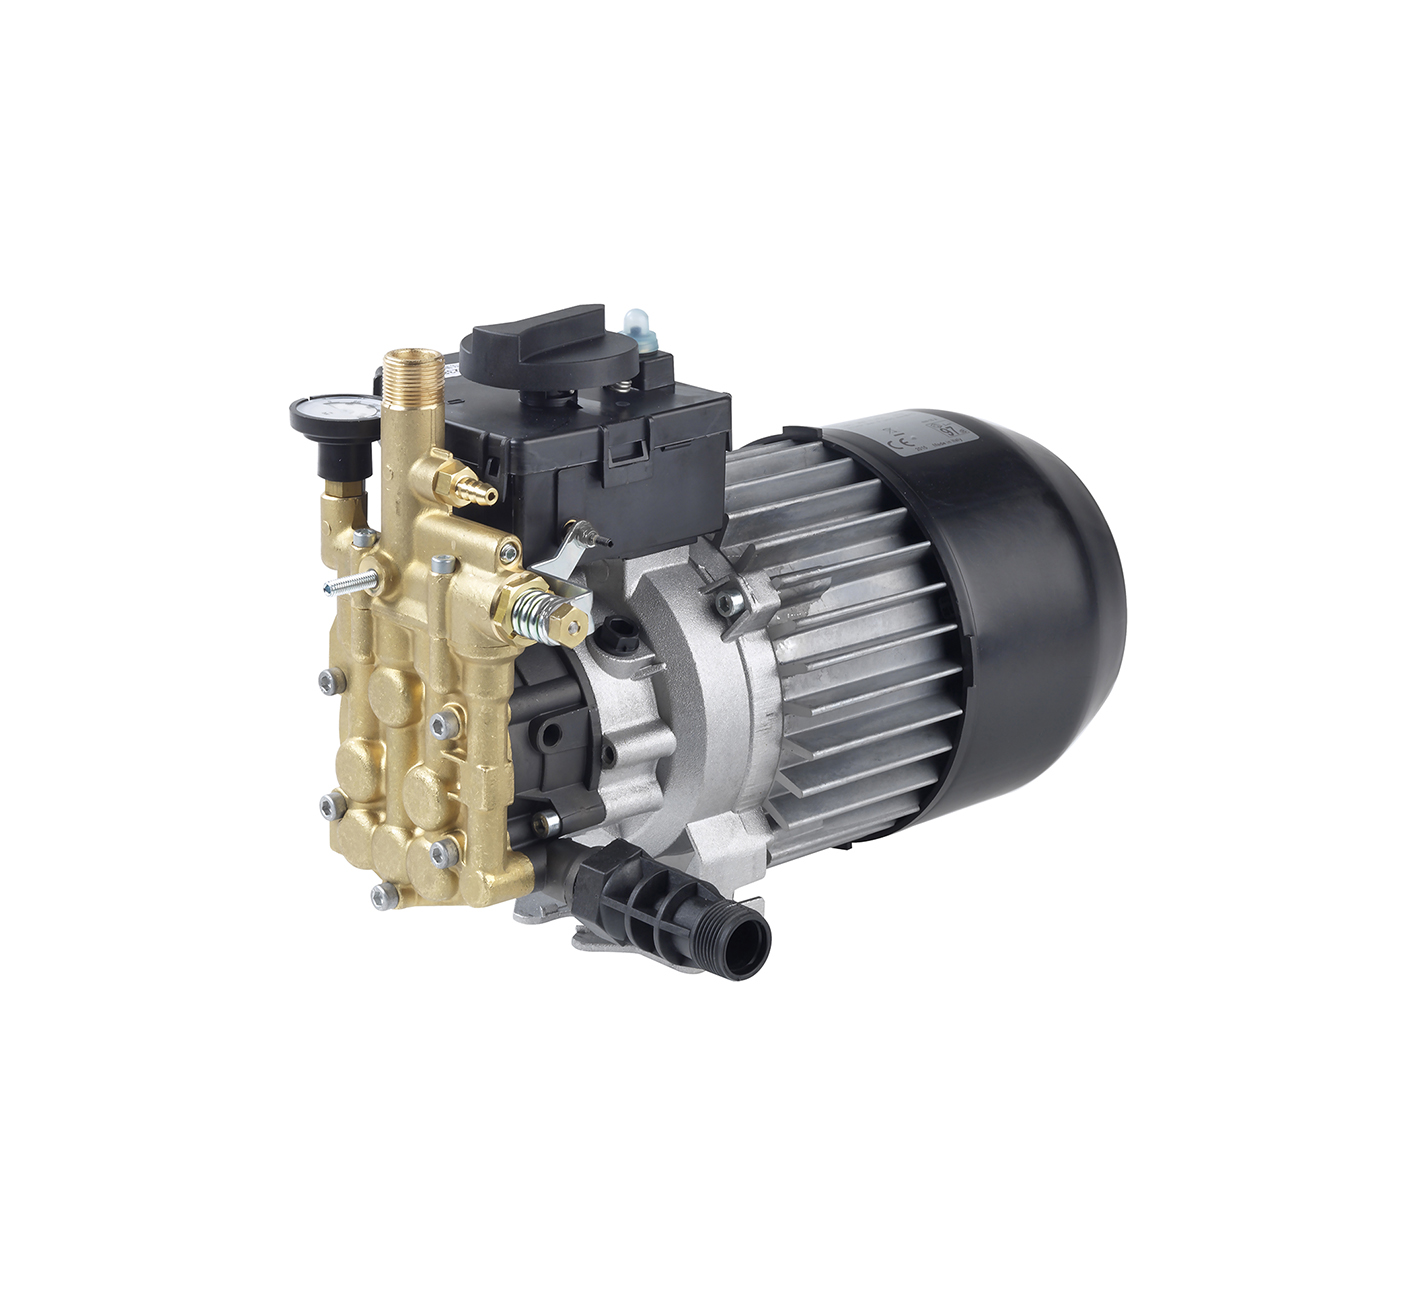 MTP KSR Comet Industrial Pumps